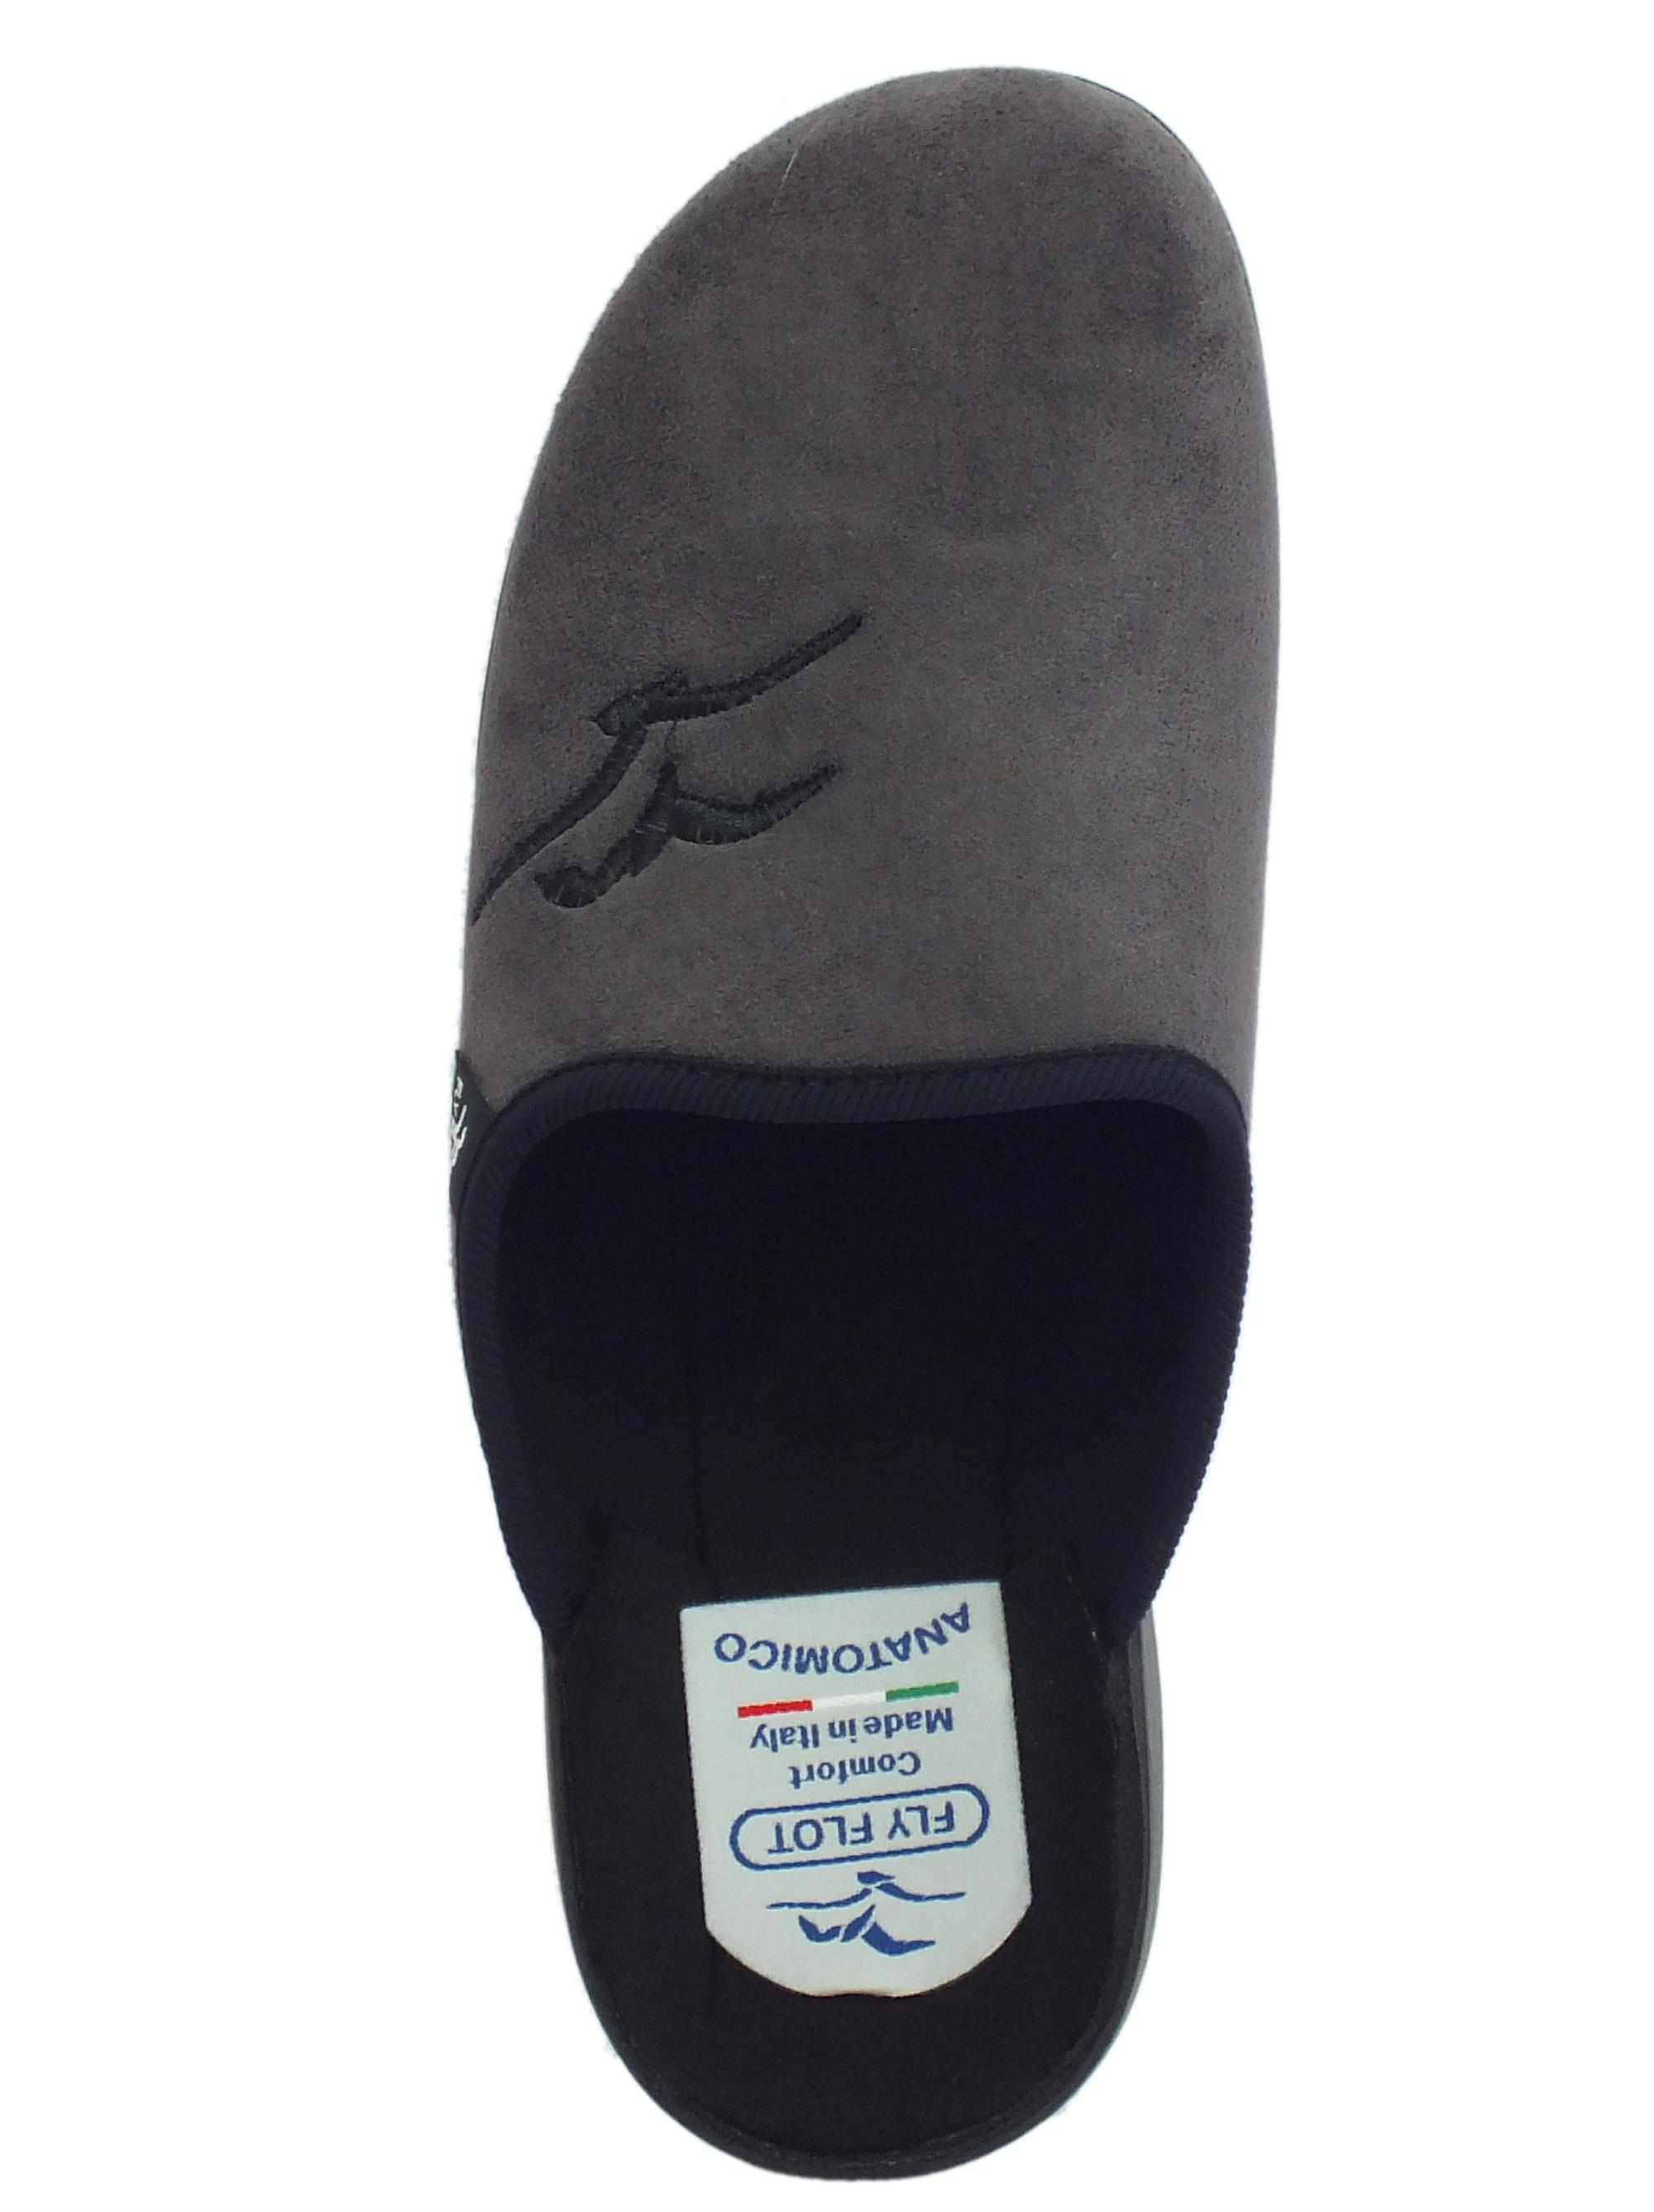 ... Pantofole FlyFlot per uomo in tessuto pile antracite sottopiede  anatomico 7844aaa0119